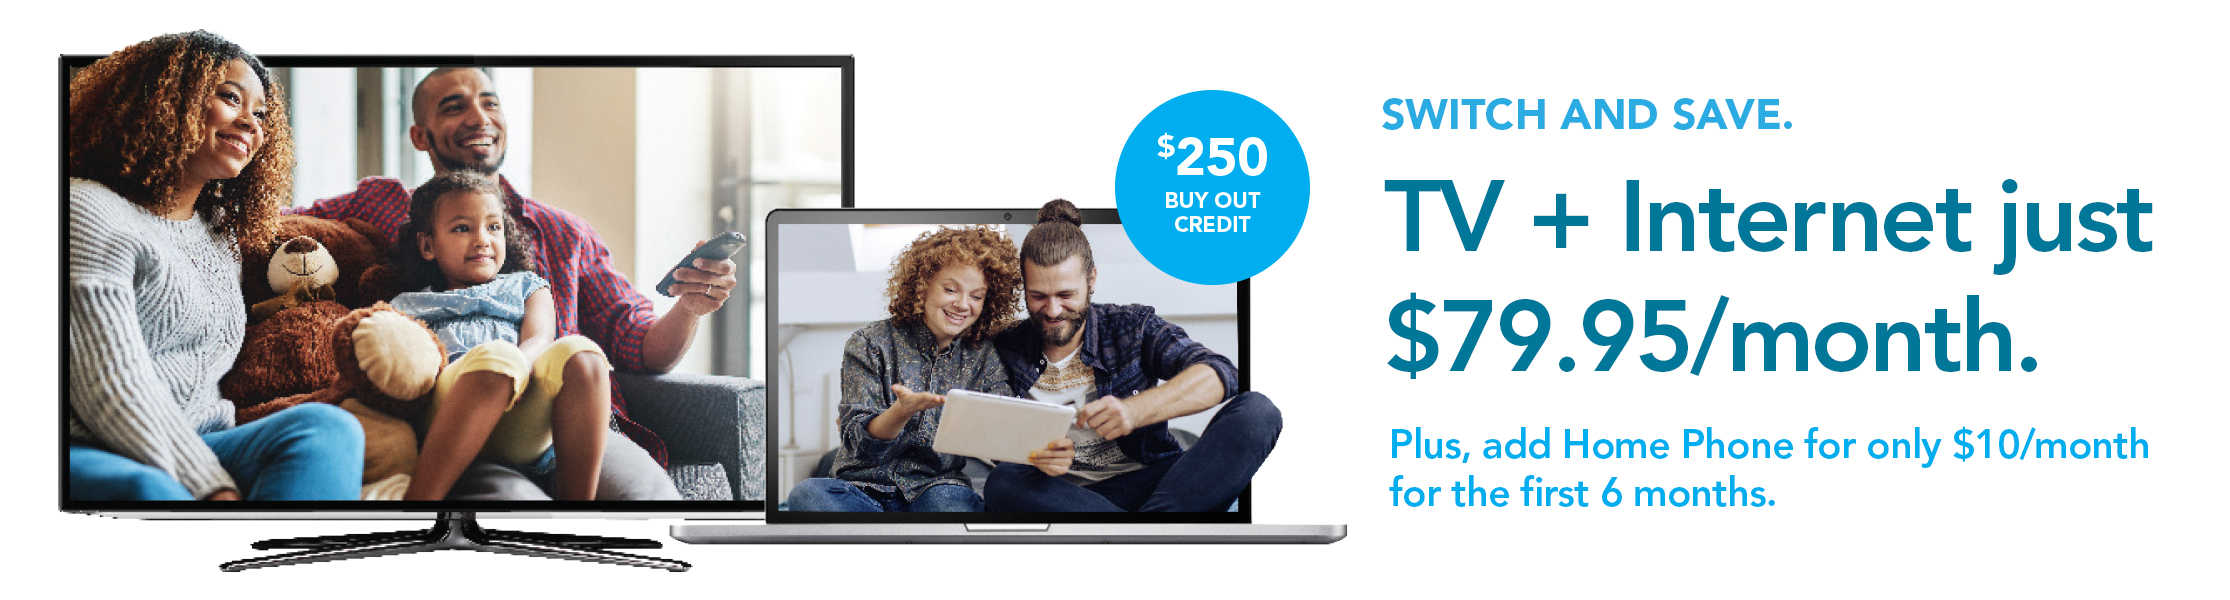 Switch and save. TV and Internet just $79.95 per month